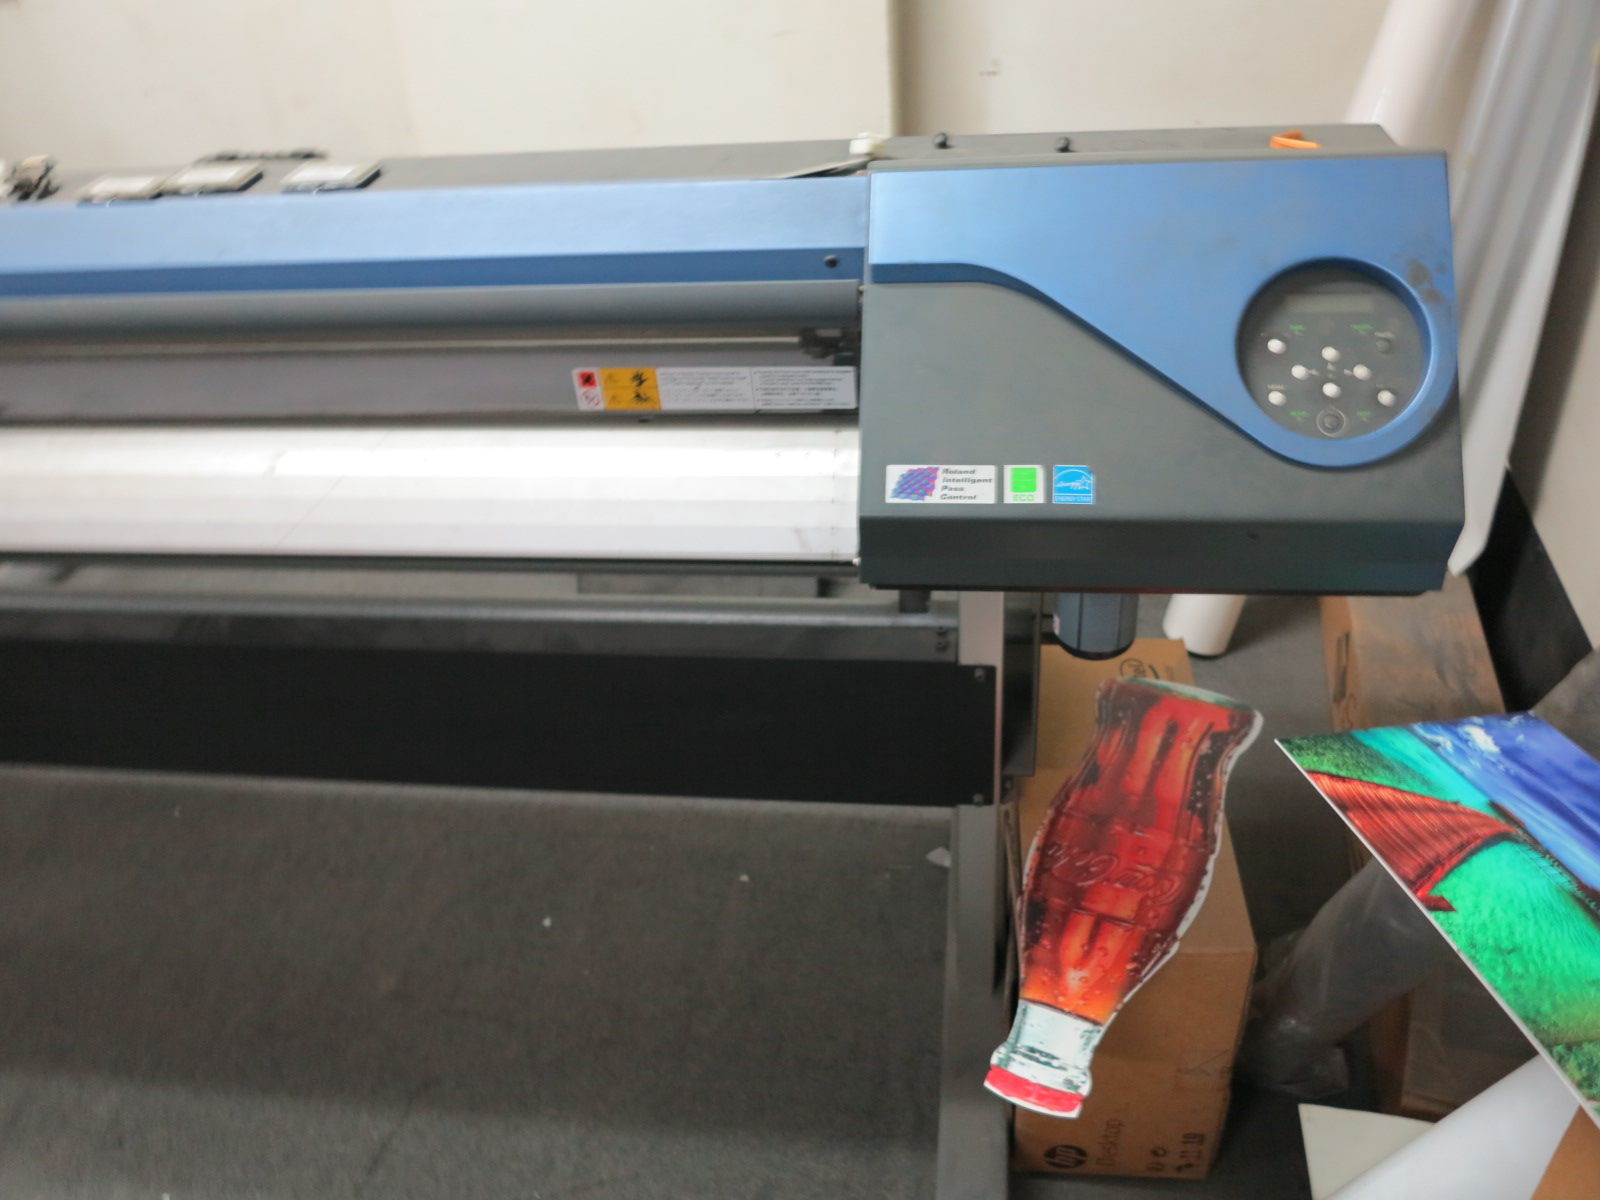 "ROLAND VERSA CAMM PRINT & CUT VS-640 64"" METALLIC INKJET PRINTER/CUTTER - Image 3 of 3"